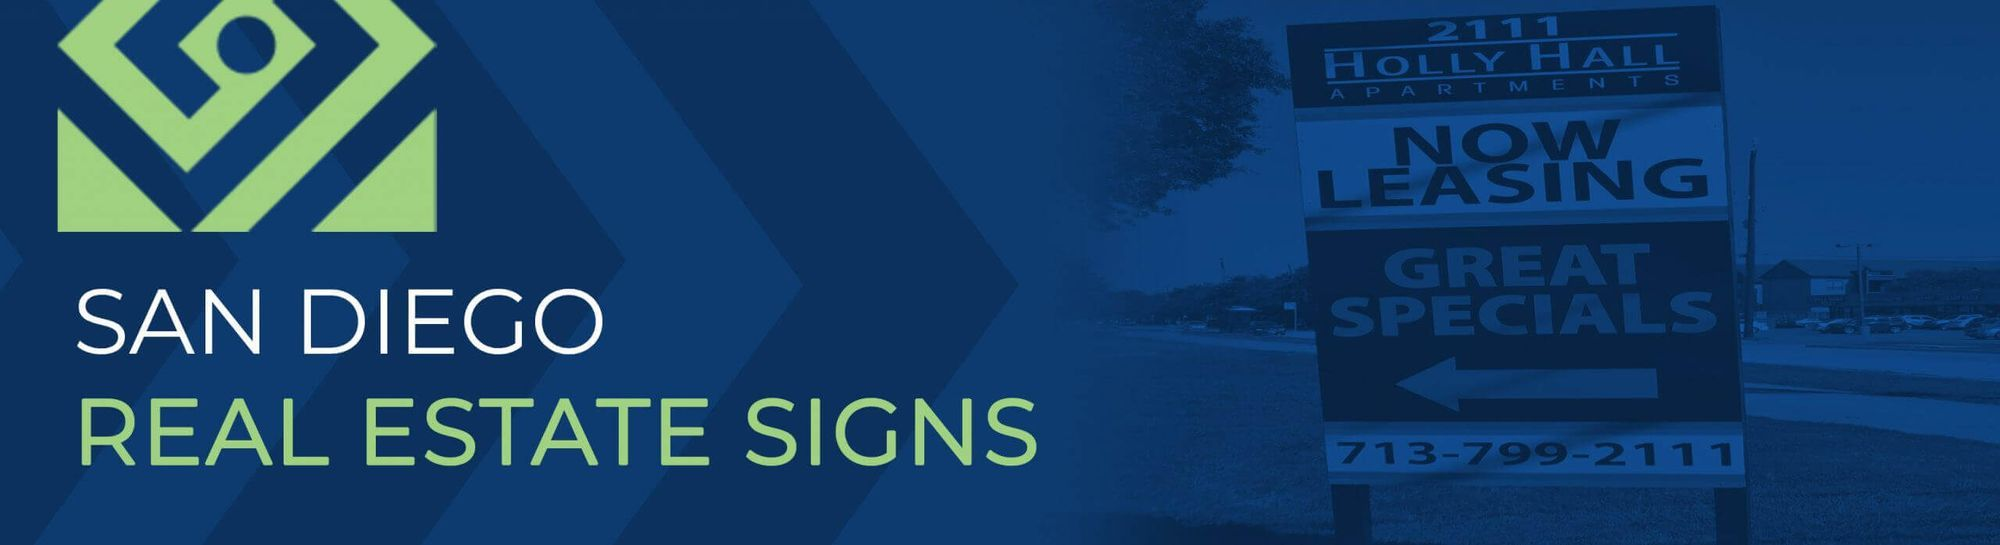 san diego real estate signs